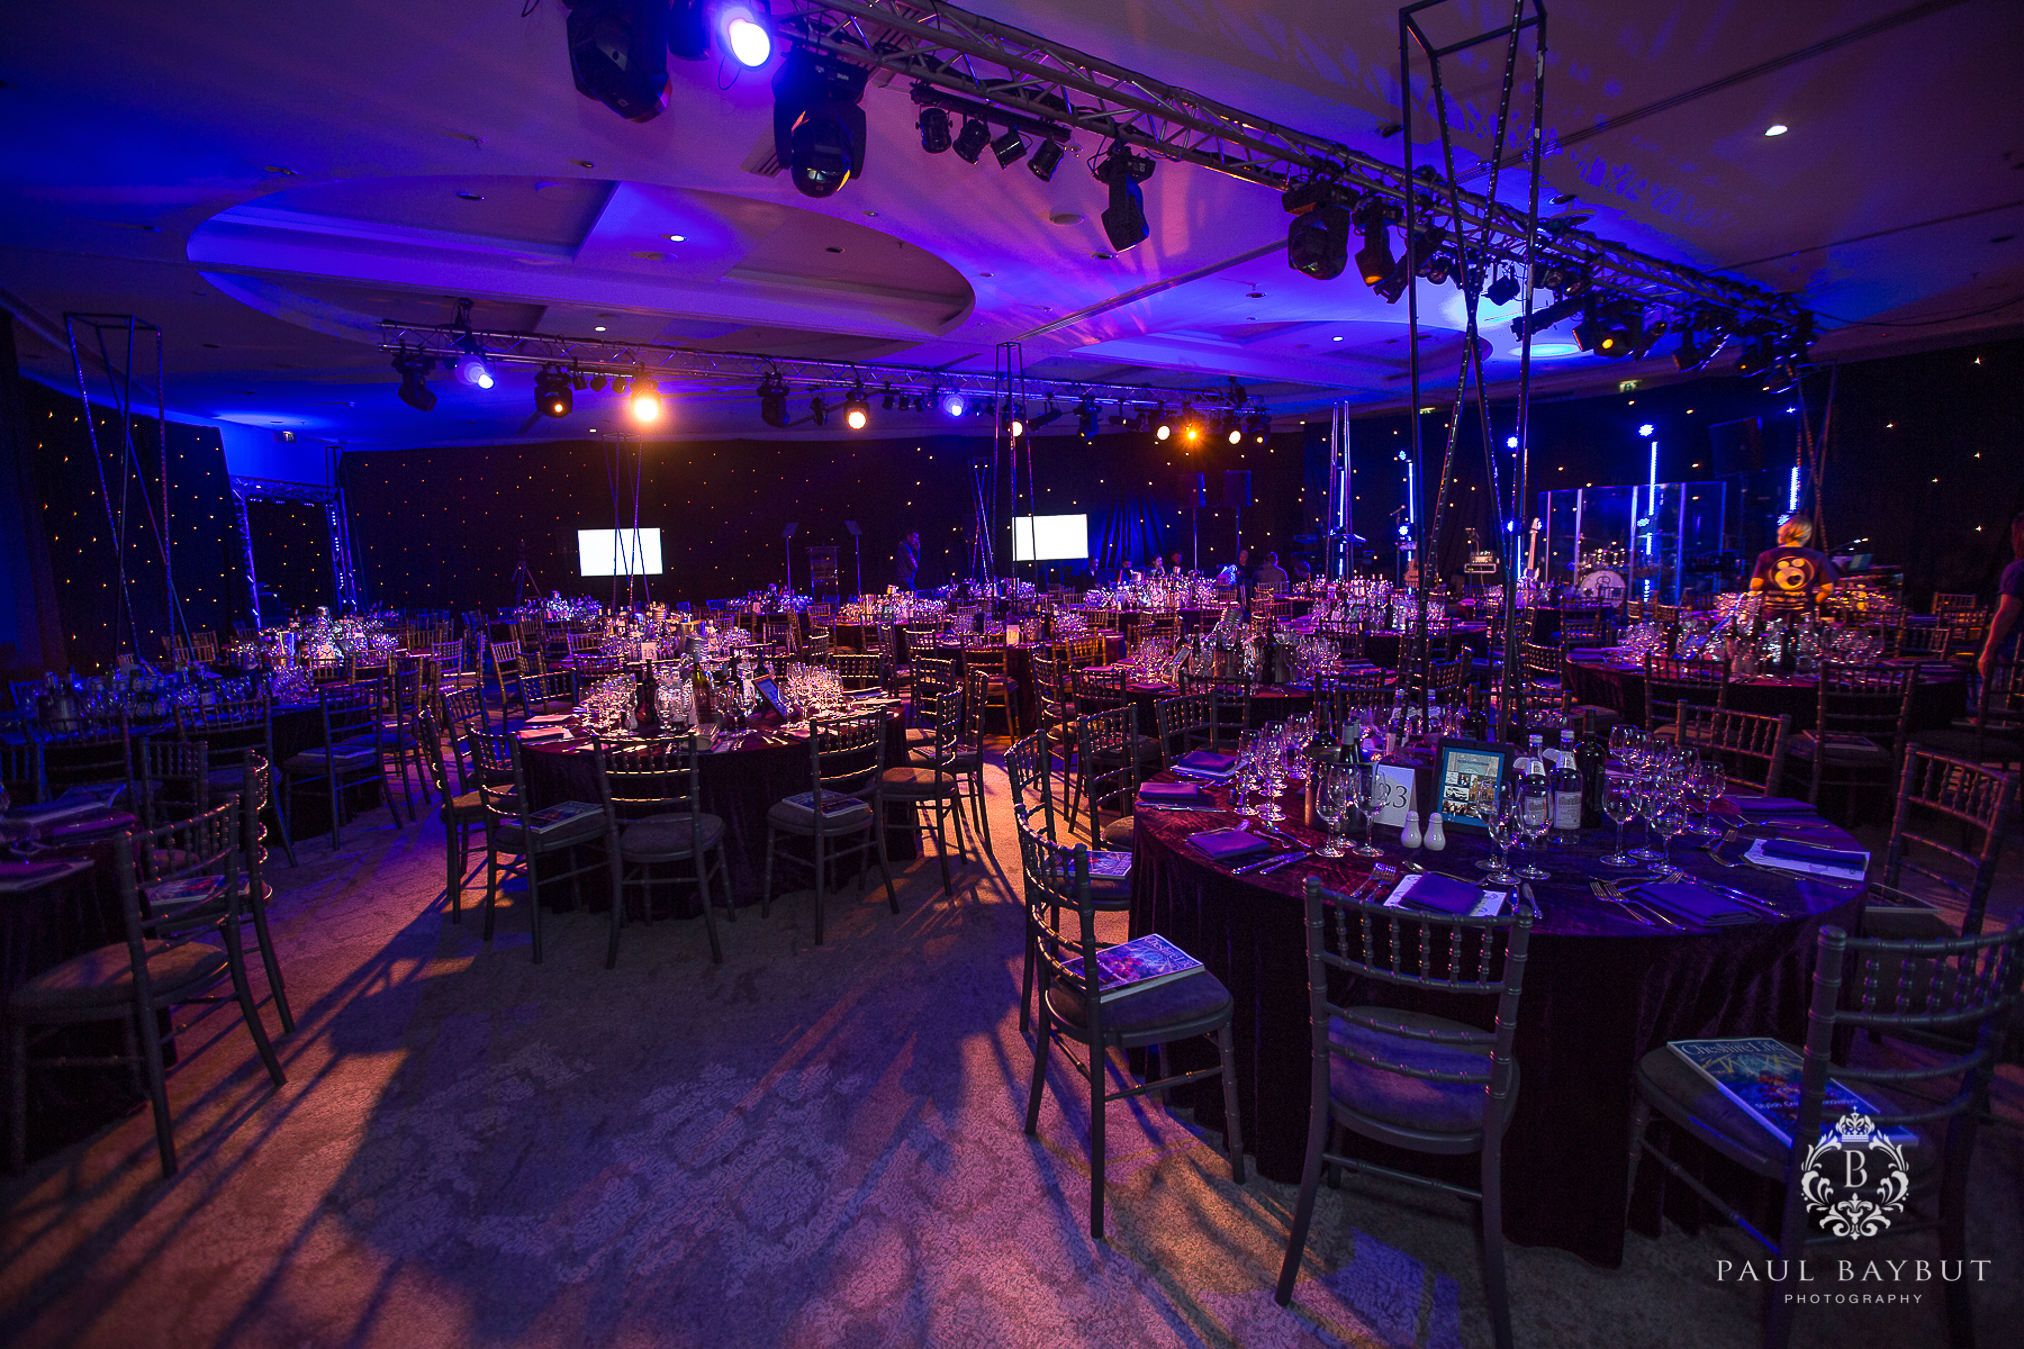 Charity event room in a Manchester hotel of the tables and stage area